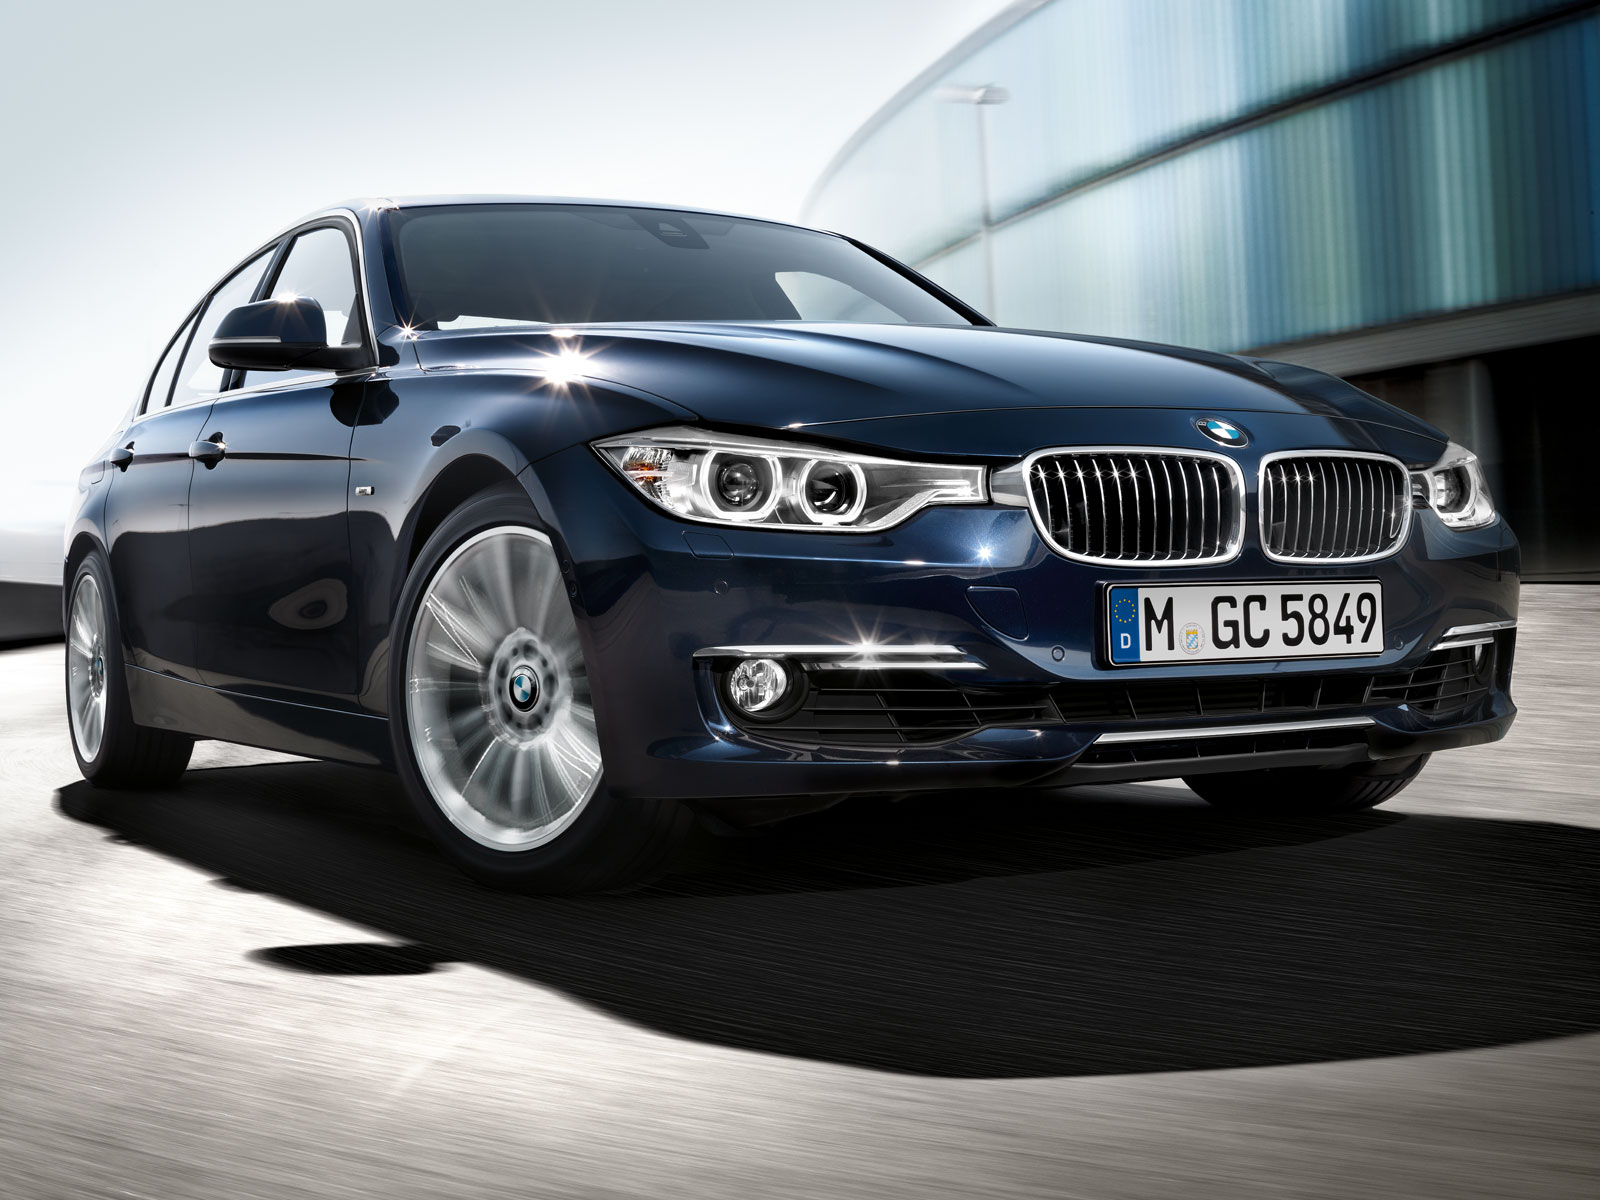 German Cars Losing Premium Image from Fire-catching BMWs